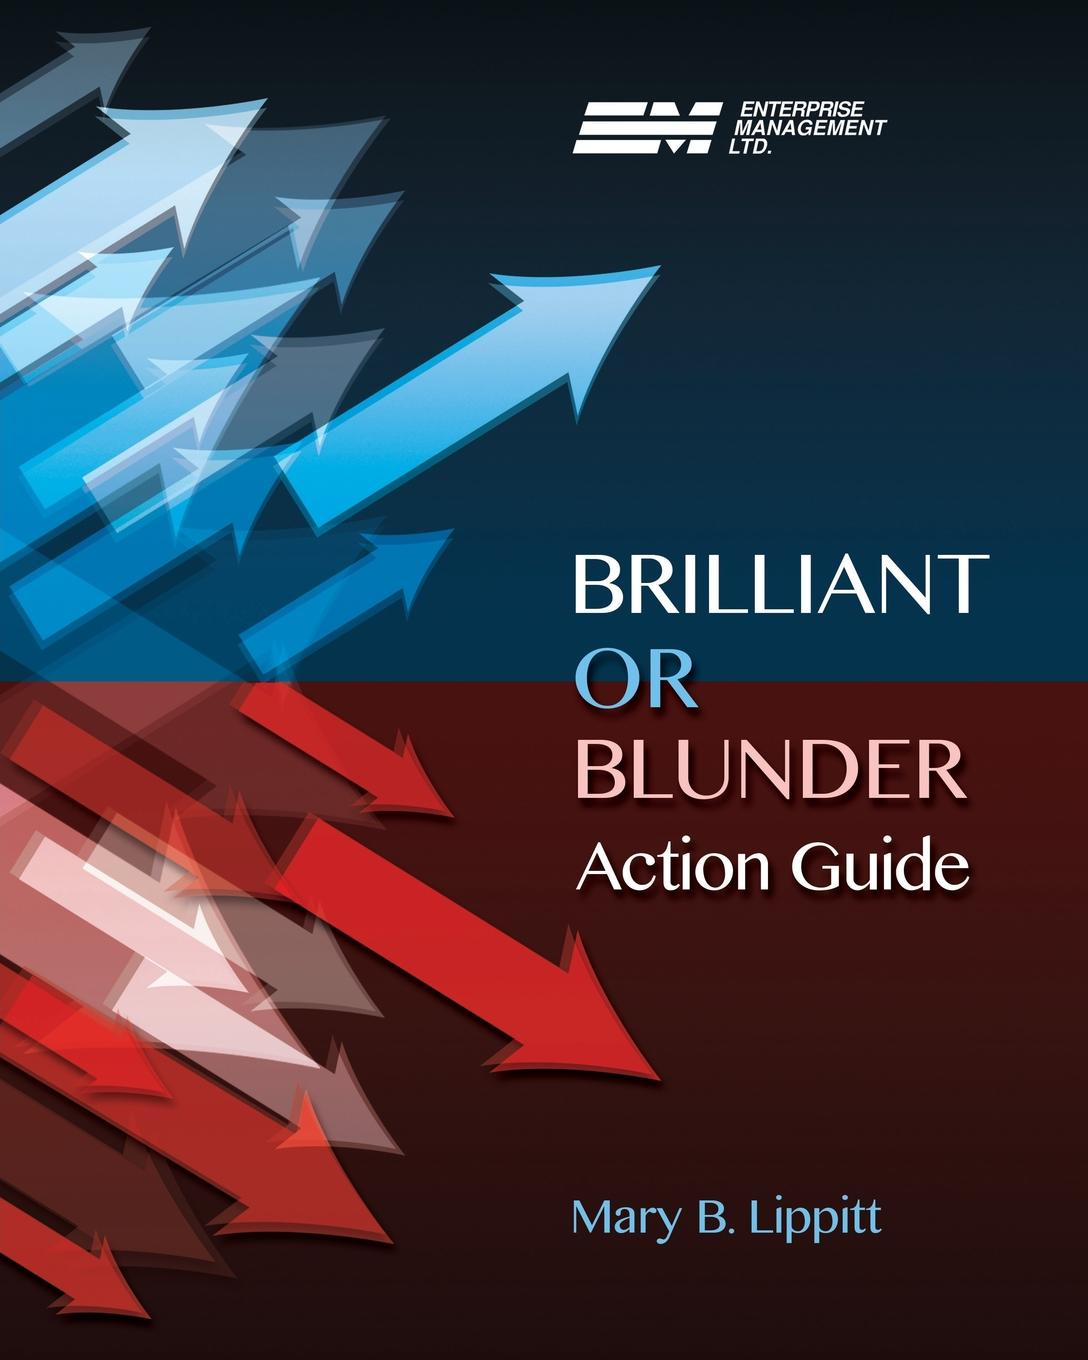 Mary B. Lipitt Brilliant or Blunder Action Guide suzanne morse w smart communities how citizens and local leaders can use strategic thinking to build a brighter future